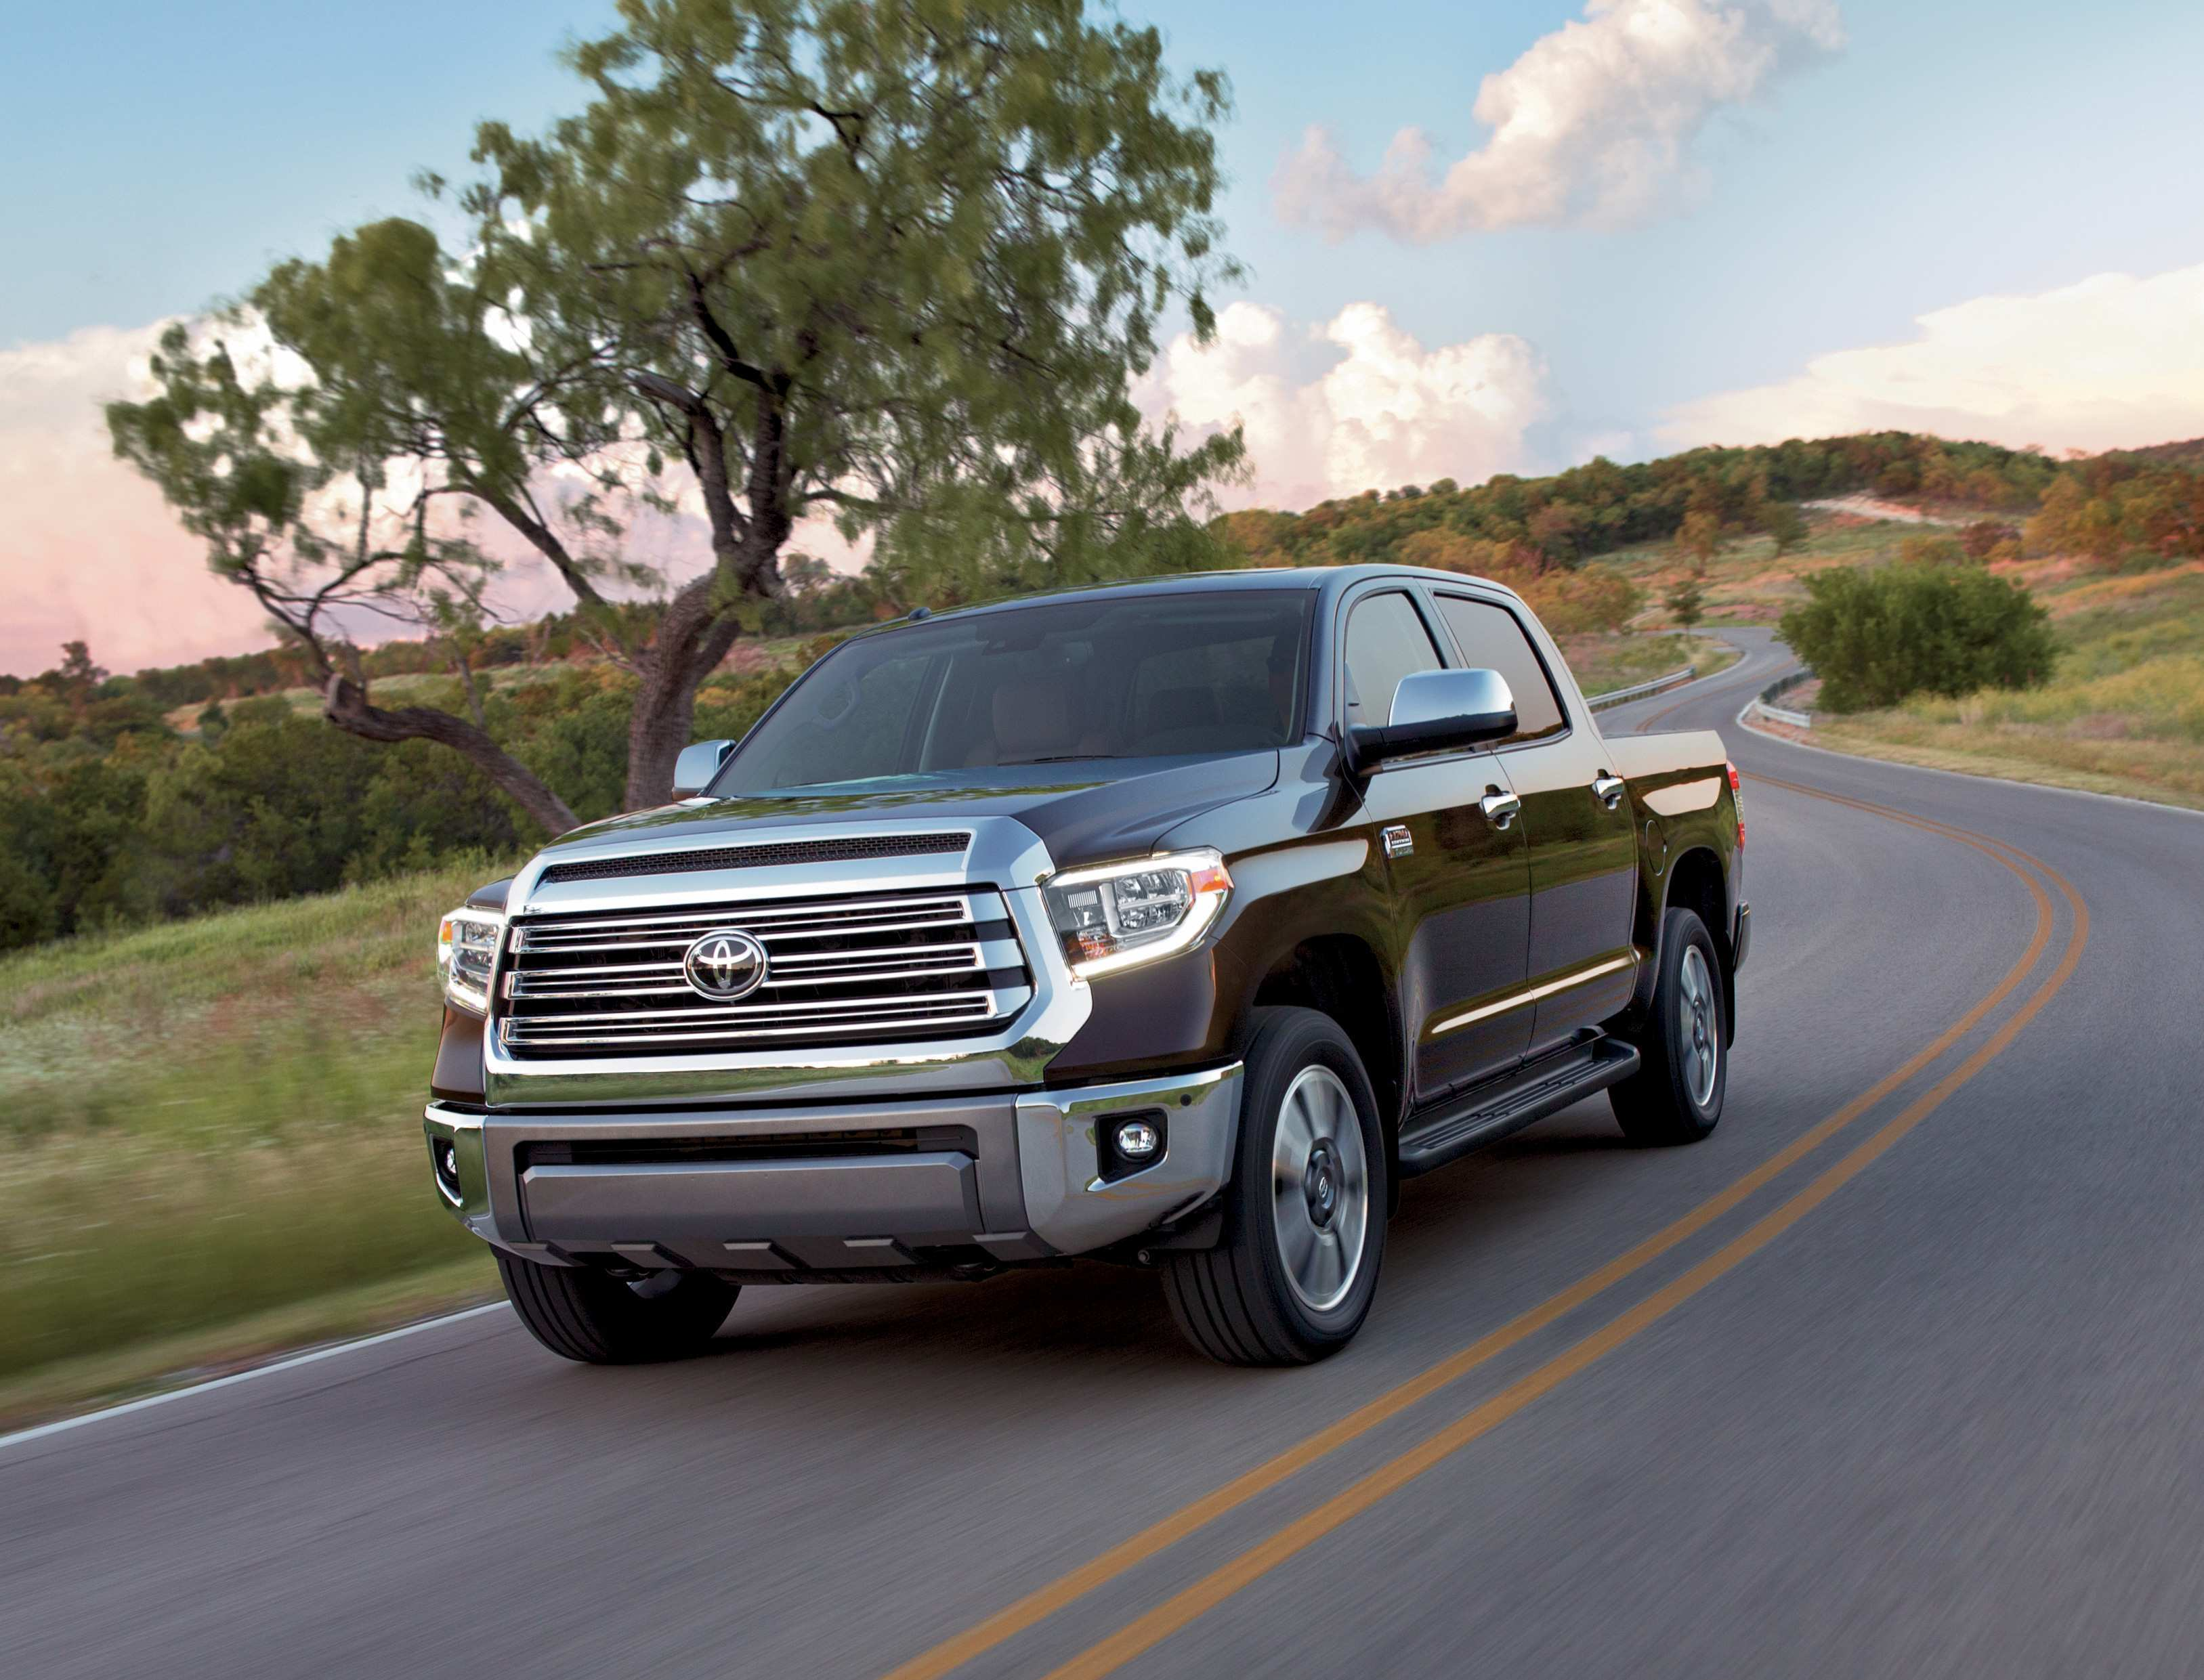 98 All New 2019 Toyota Tundra Truck Performance and New Engine by 2019 Toyota Tundra Truck